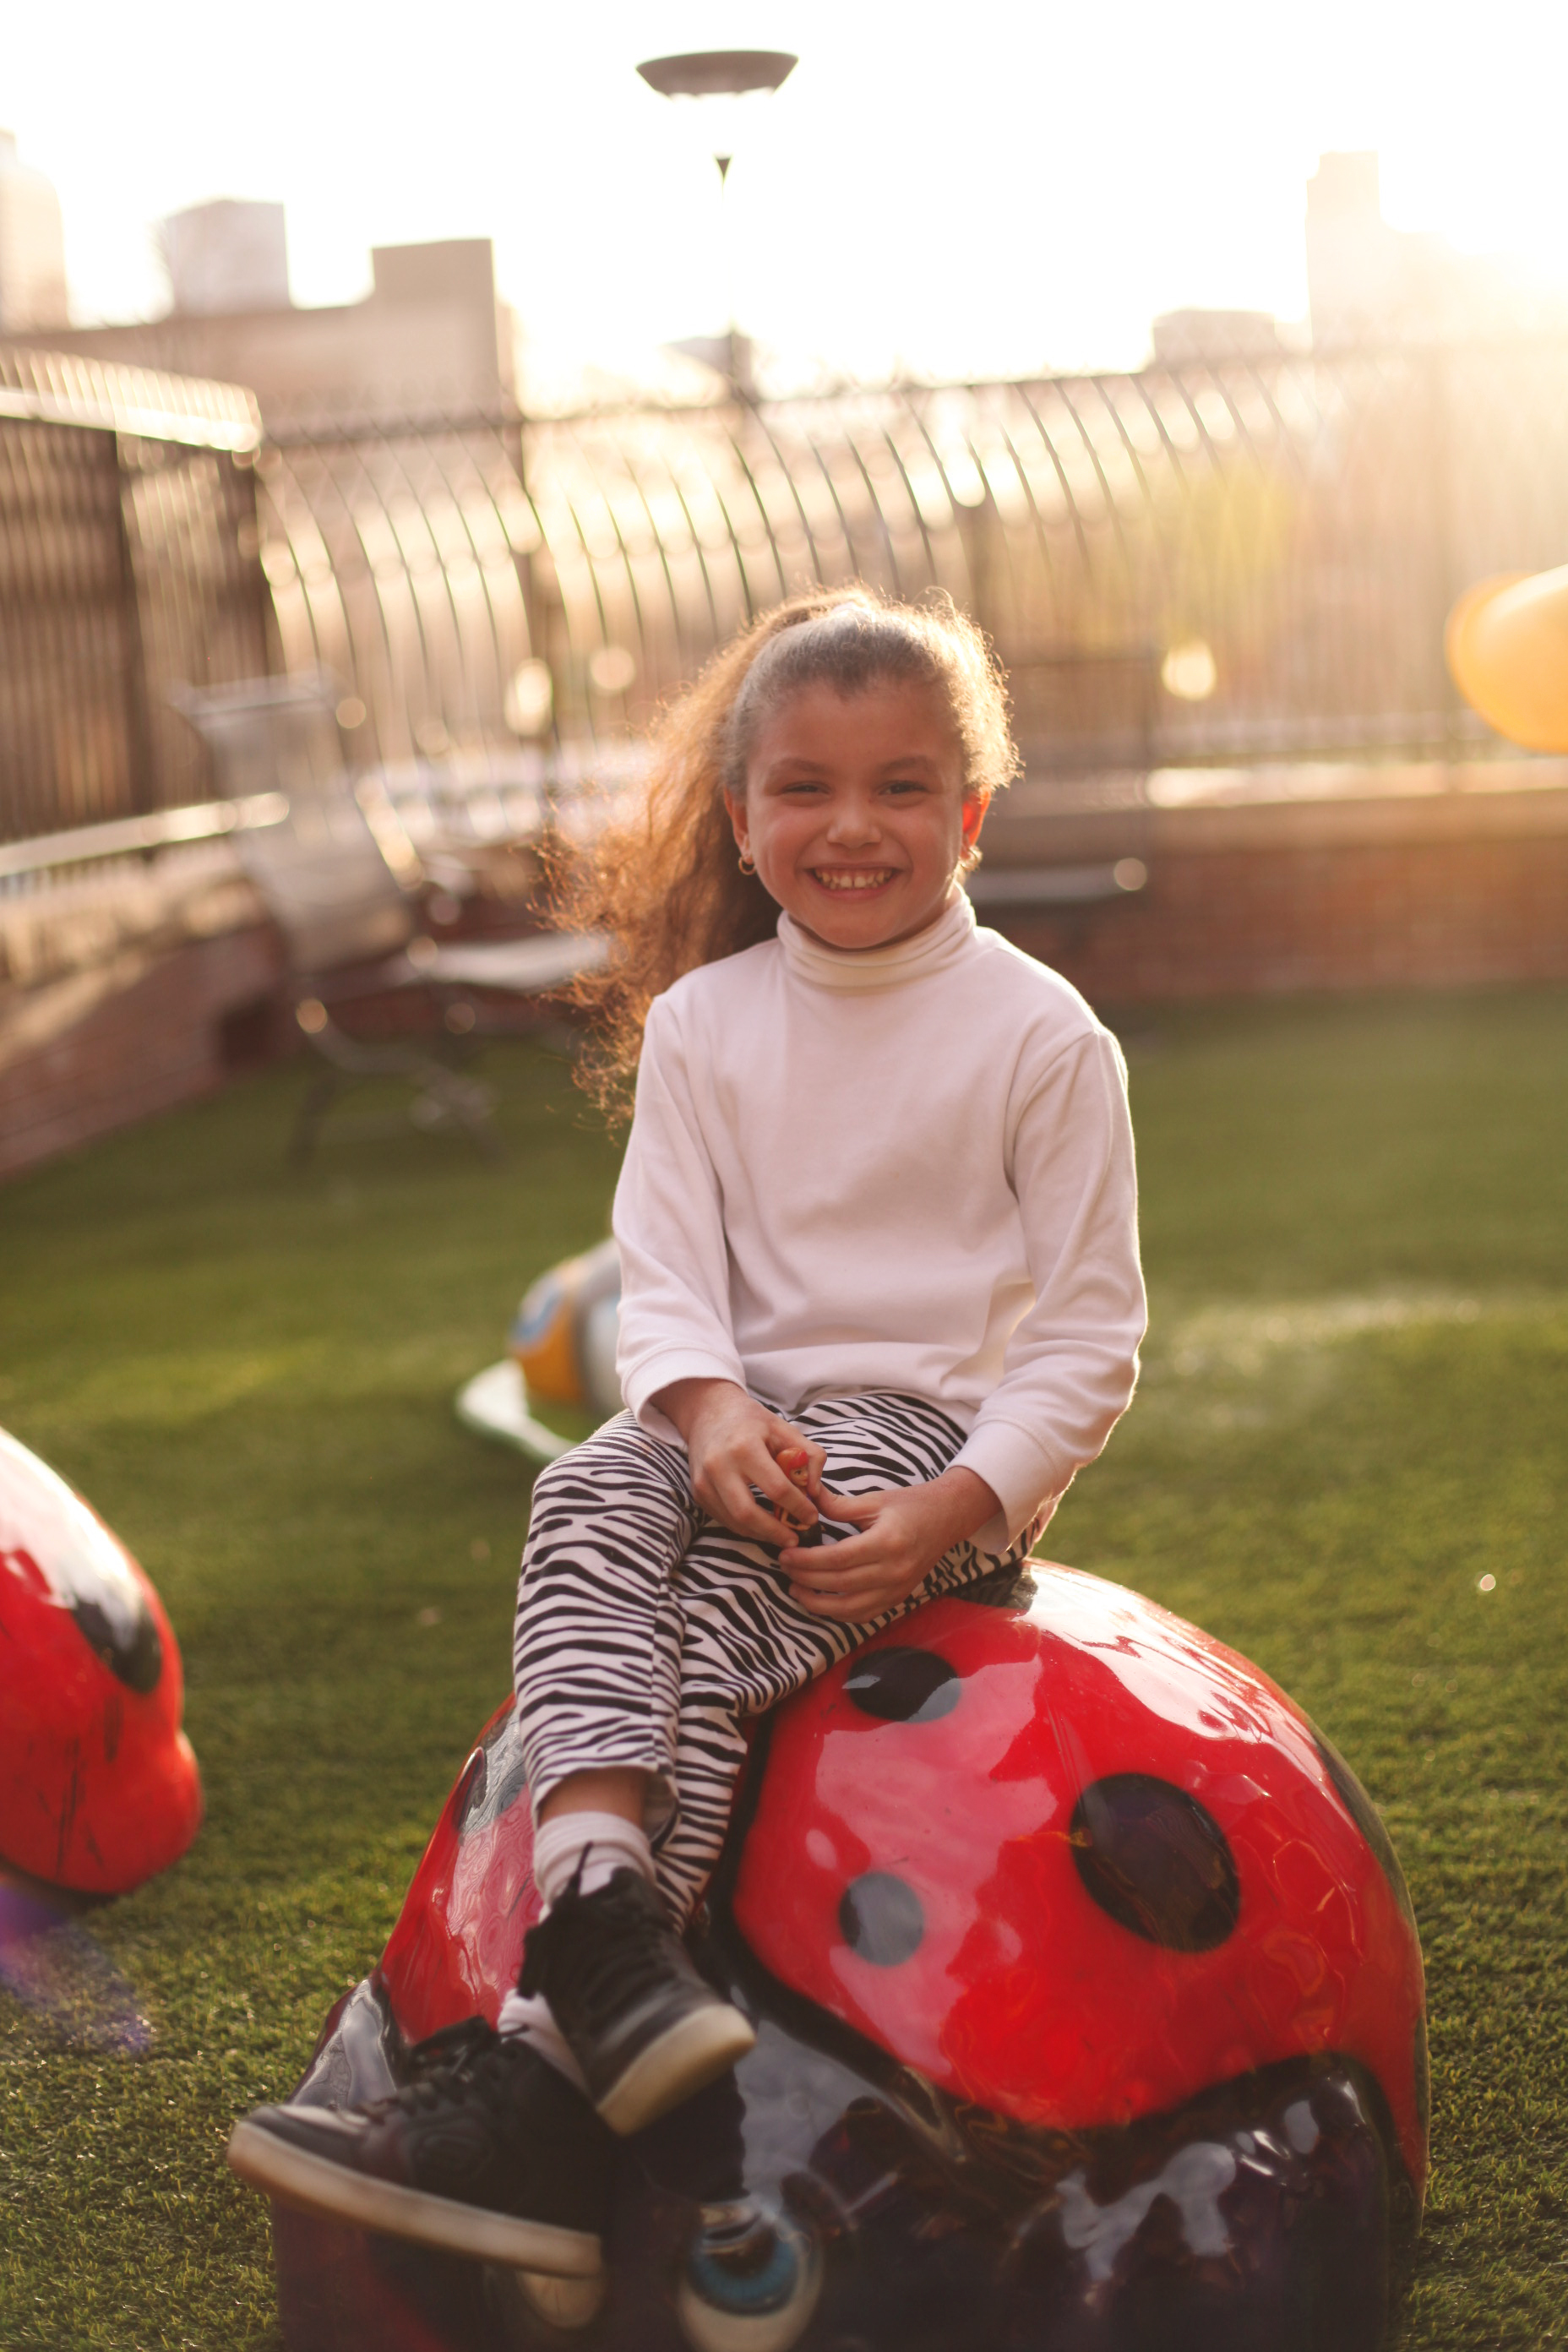 Young smiling girl sitting on a ladybug on the playground